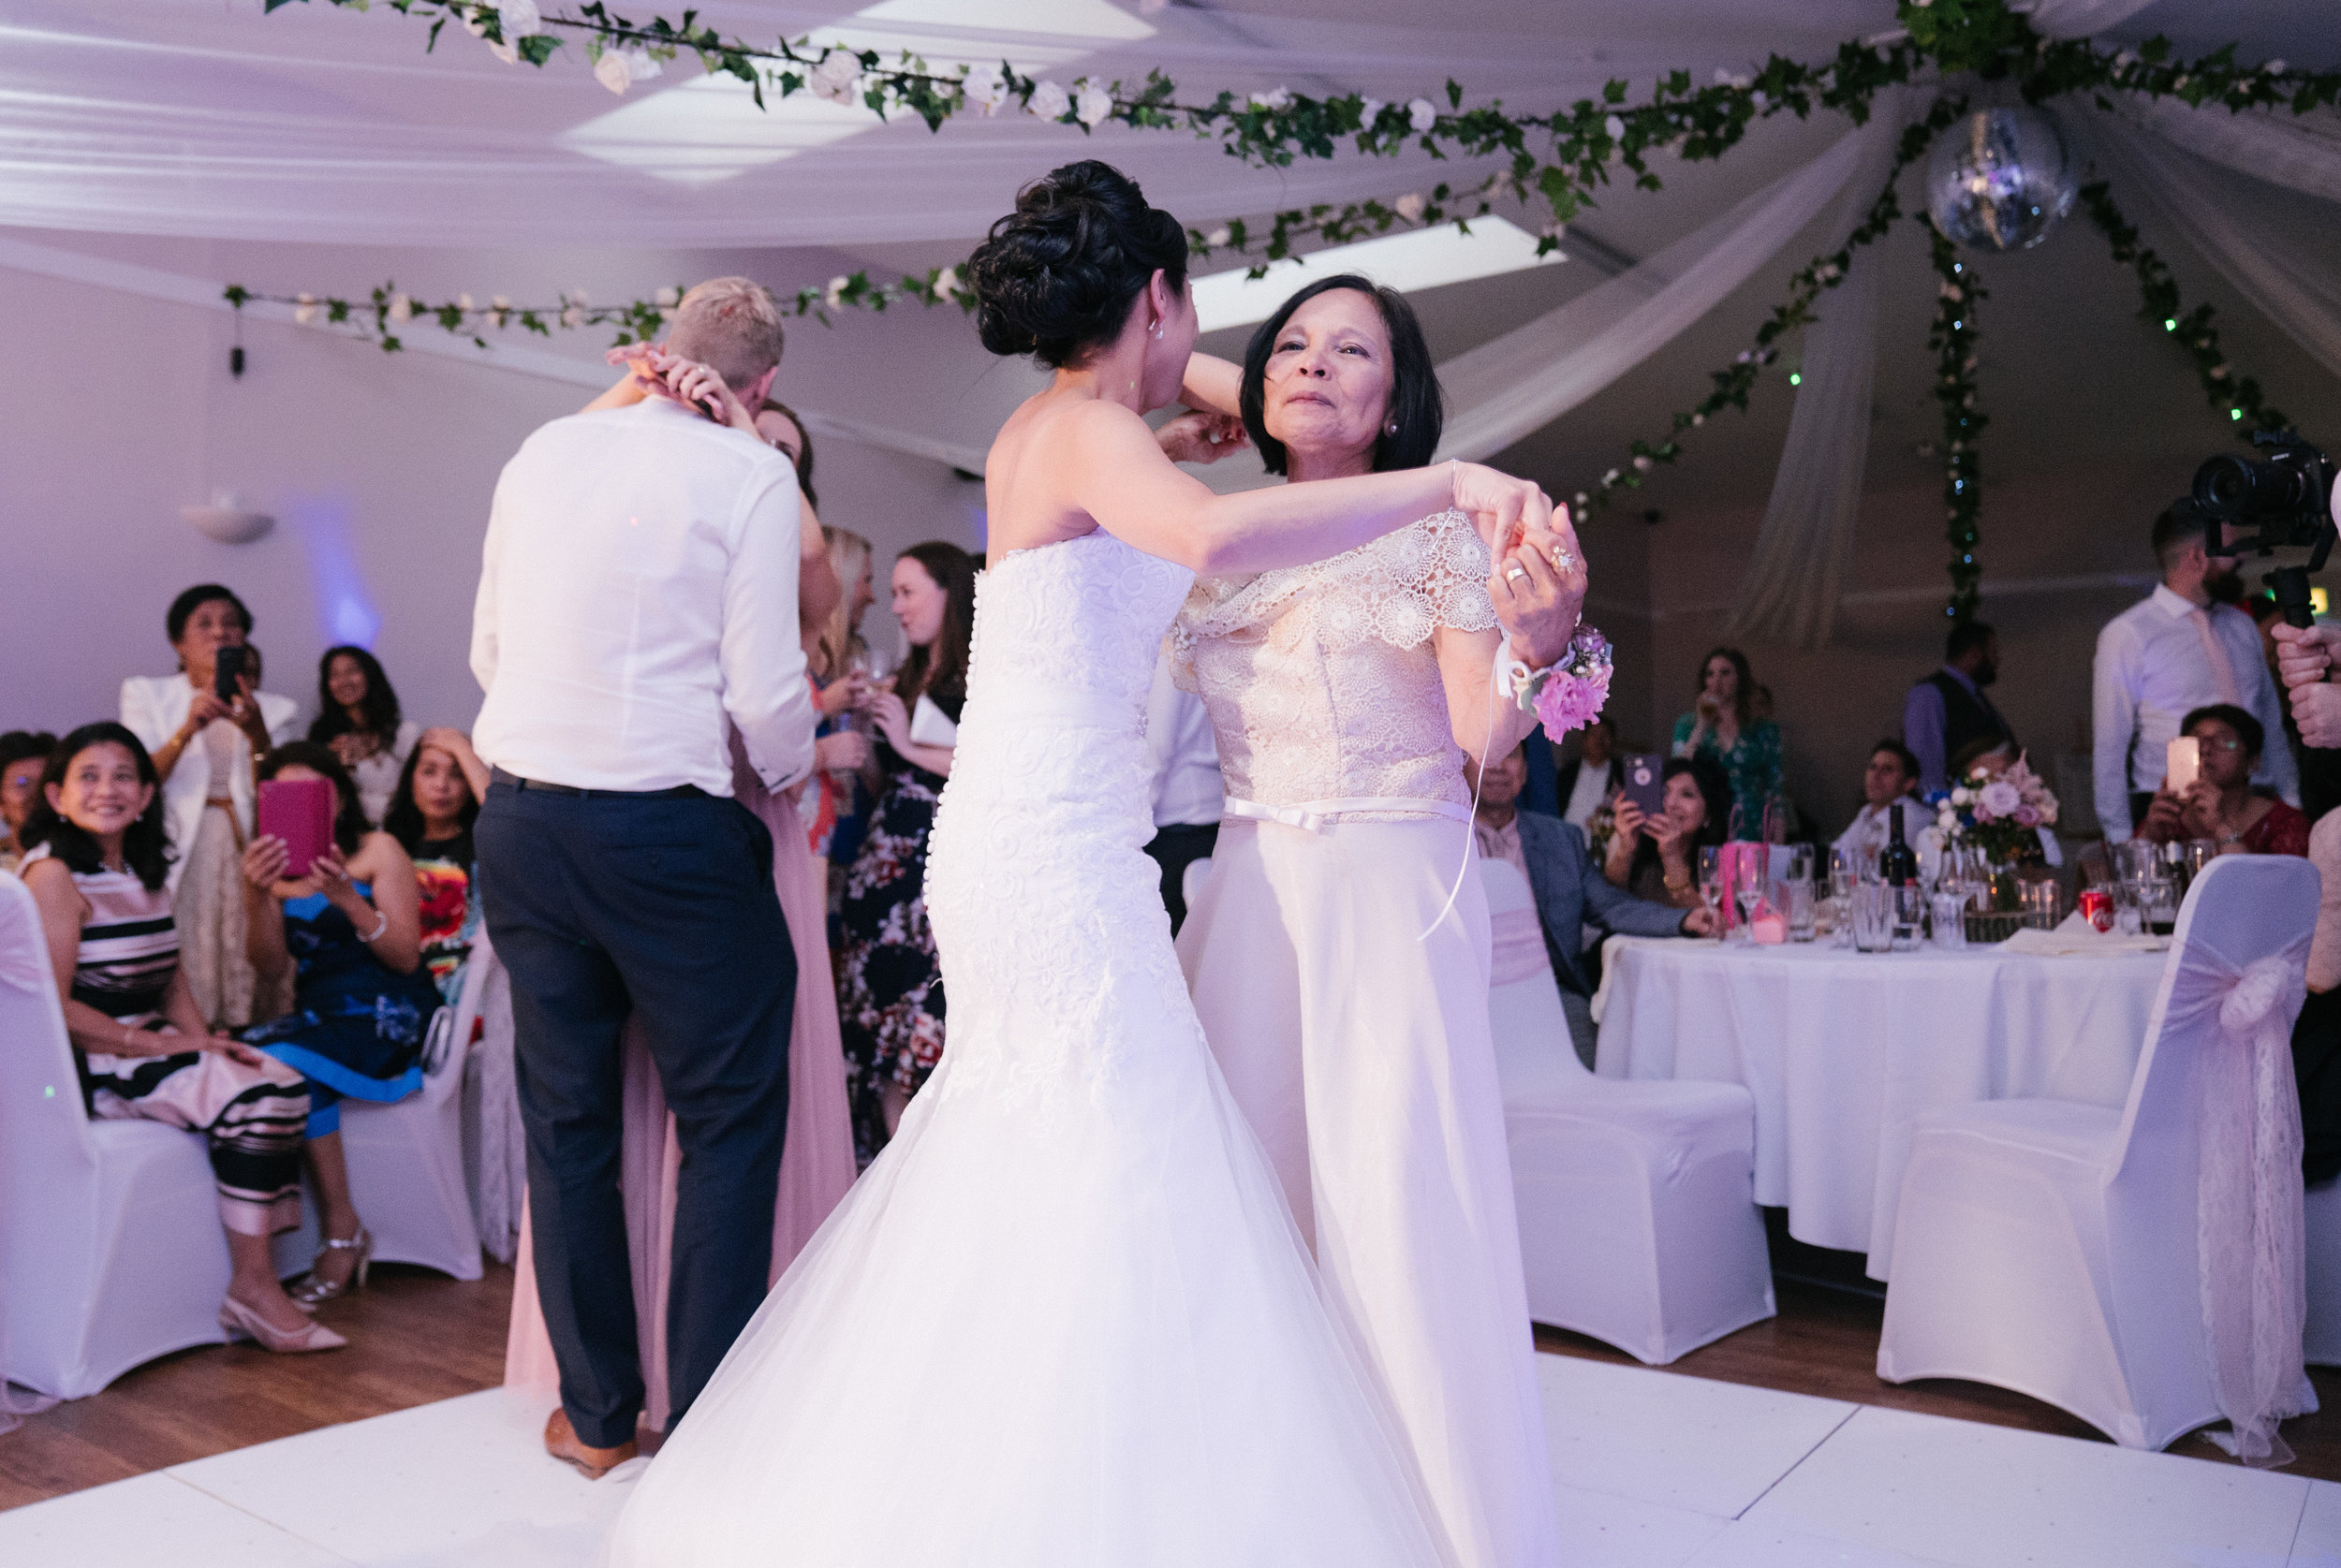 bedfordshire-london-wedding-photographer-videographer-69